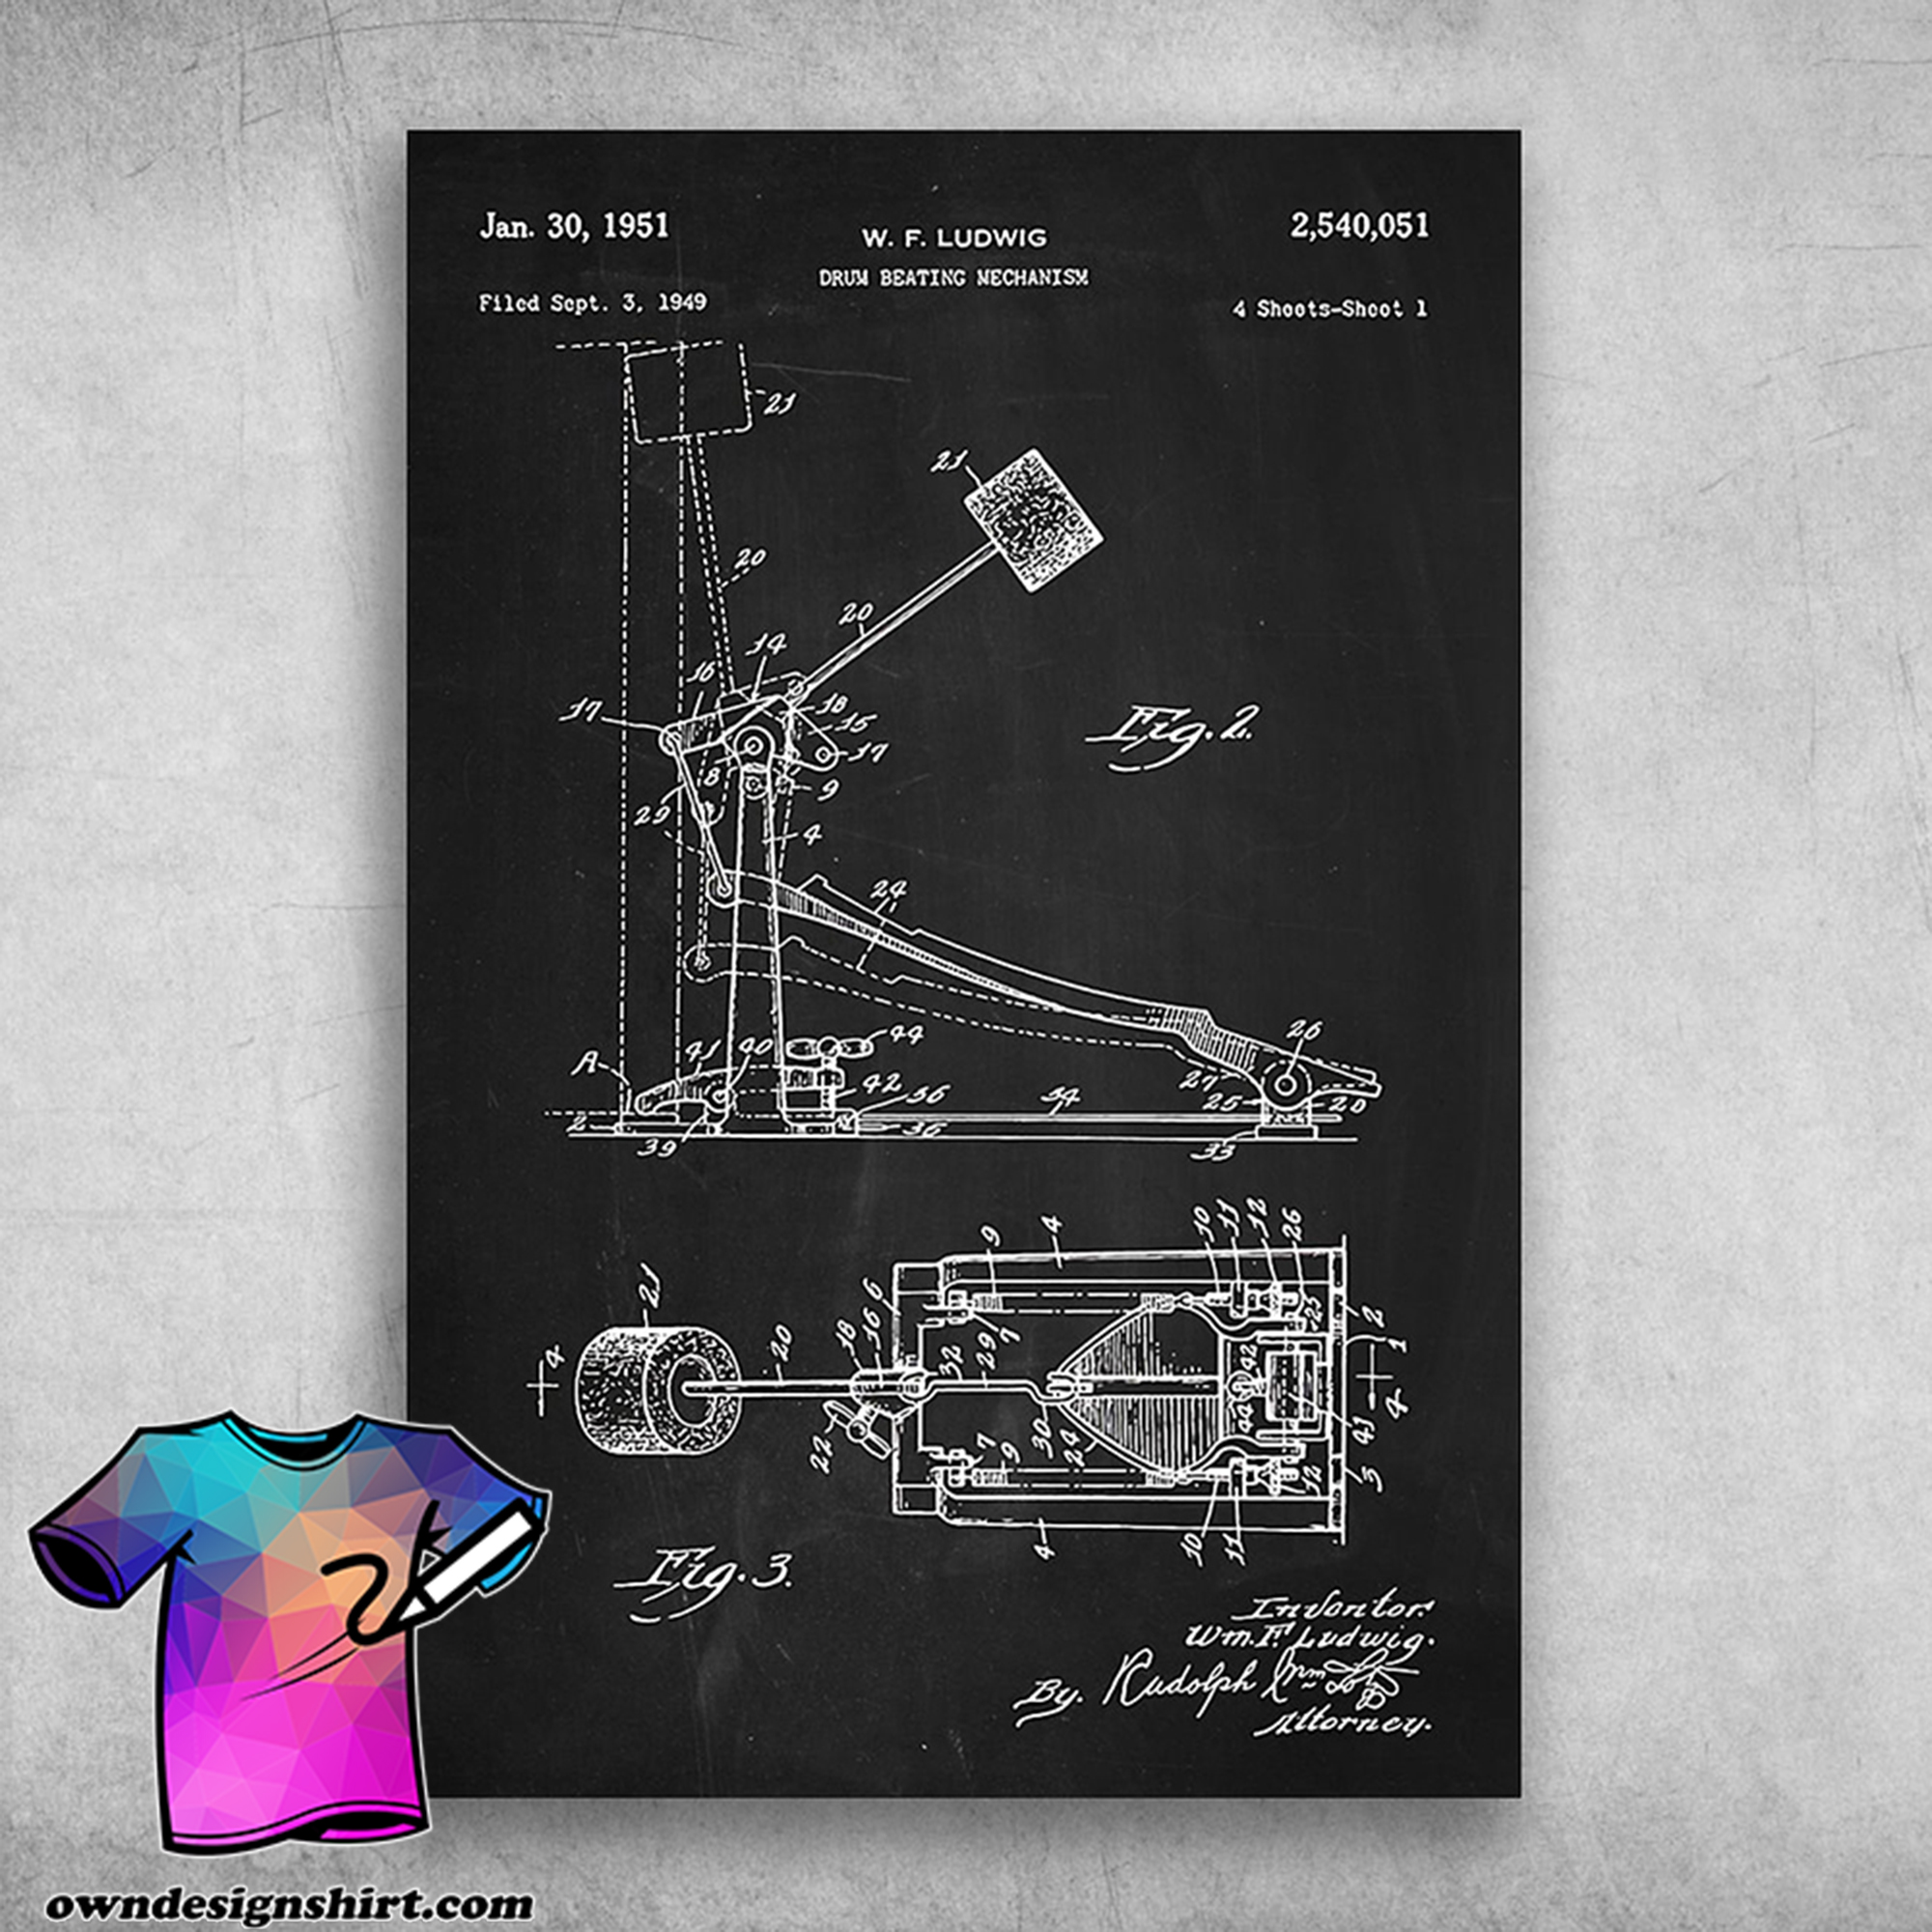 Drum beating mechanism drum musical instrument structure poster